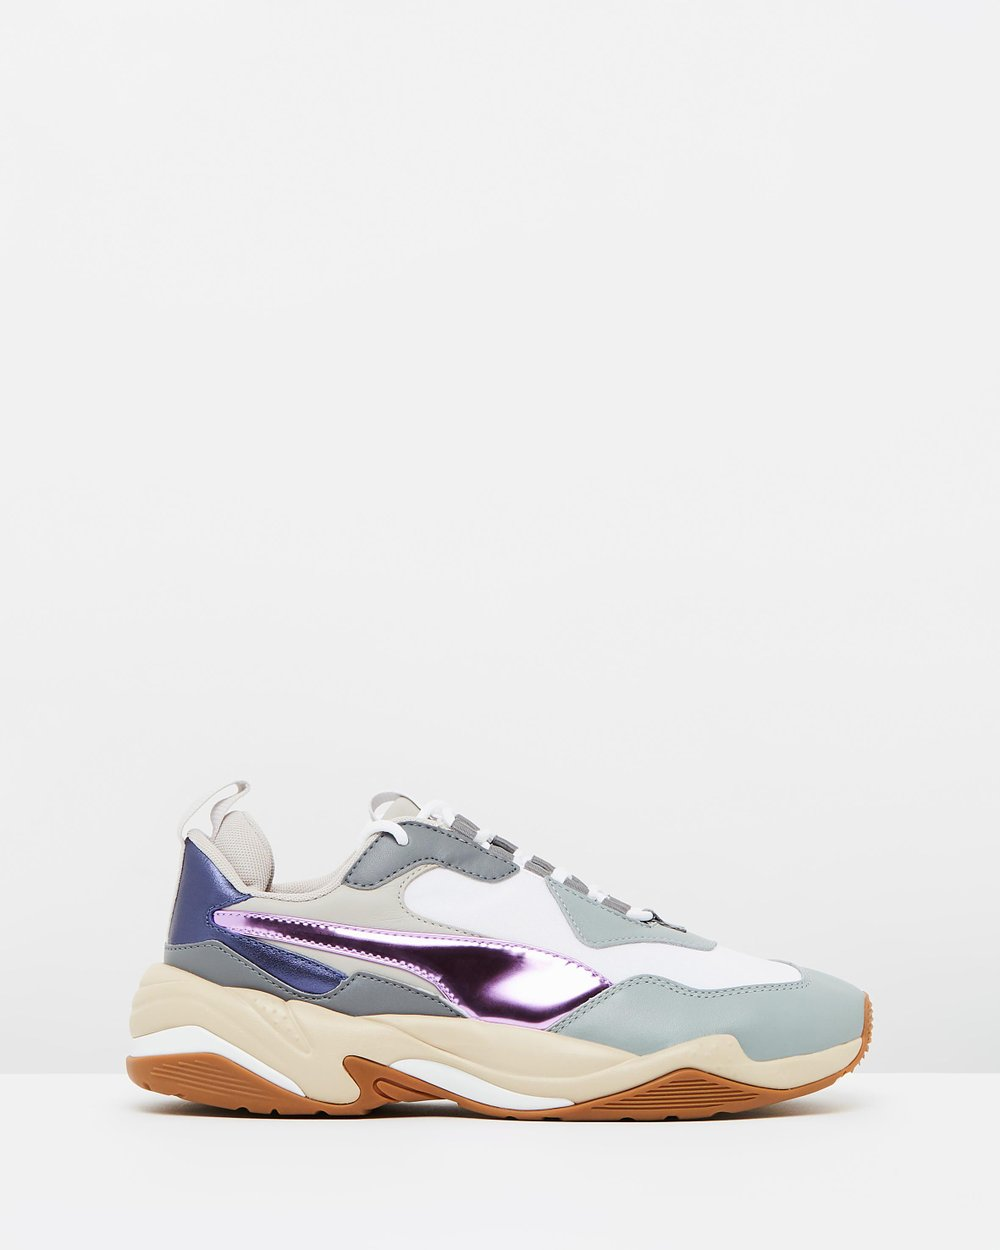 7c55c4a3ddbdb4 Thunder Electric - Women s by Puma Online